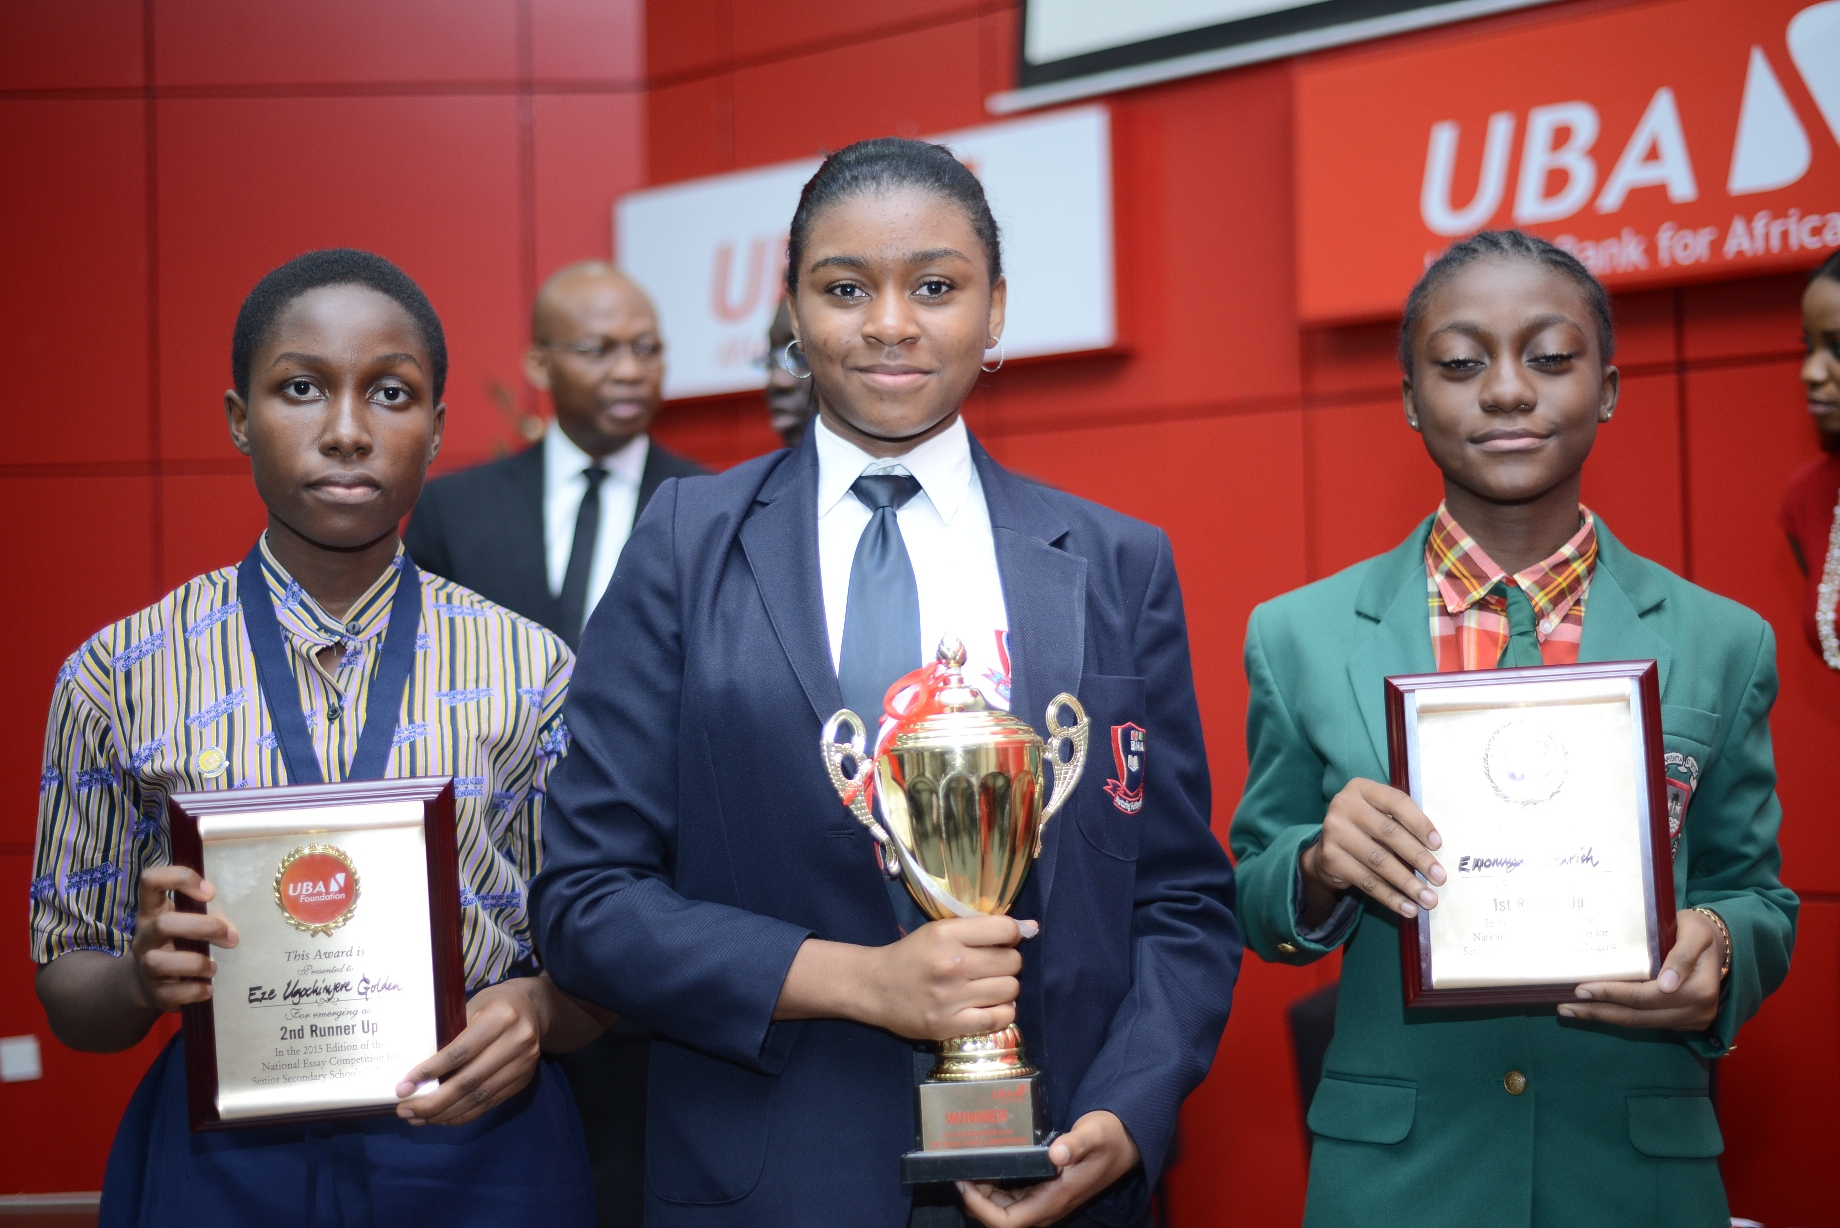 world bank essay competition winner Winner of maritime essay competition says 'i am overwhelmed dana air welcomes fg's audit order march 8, 2018 world bank chief says us tariffs could affect global trade march 8, 2018 eu seeks us tariff he also admonished the winners in the essay competition to take interest in.